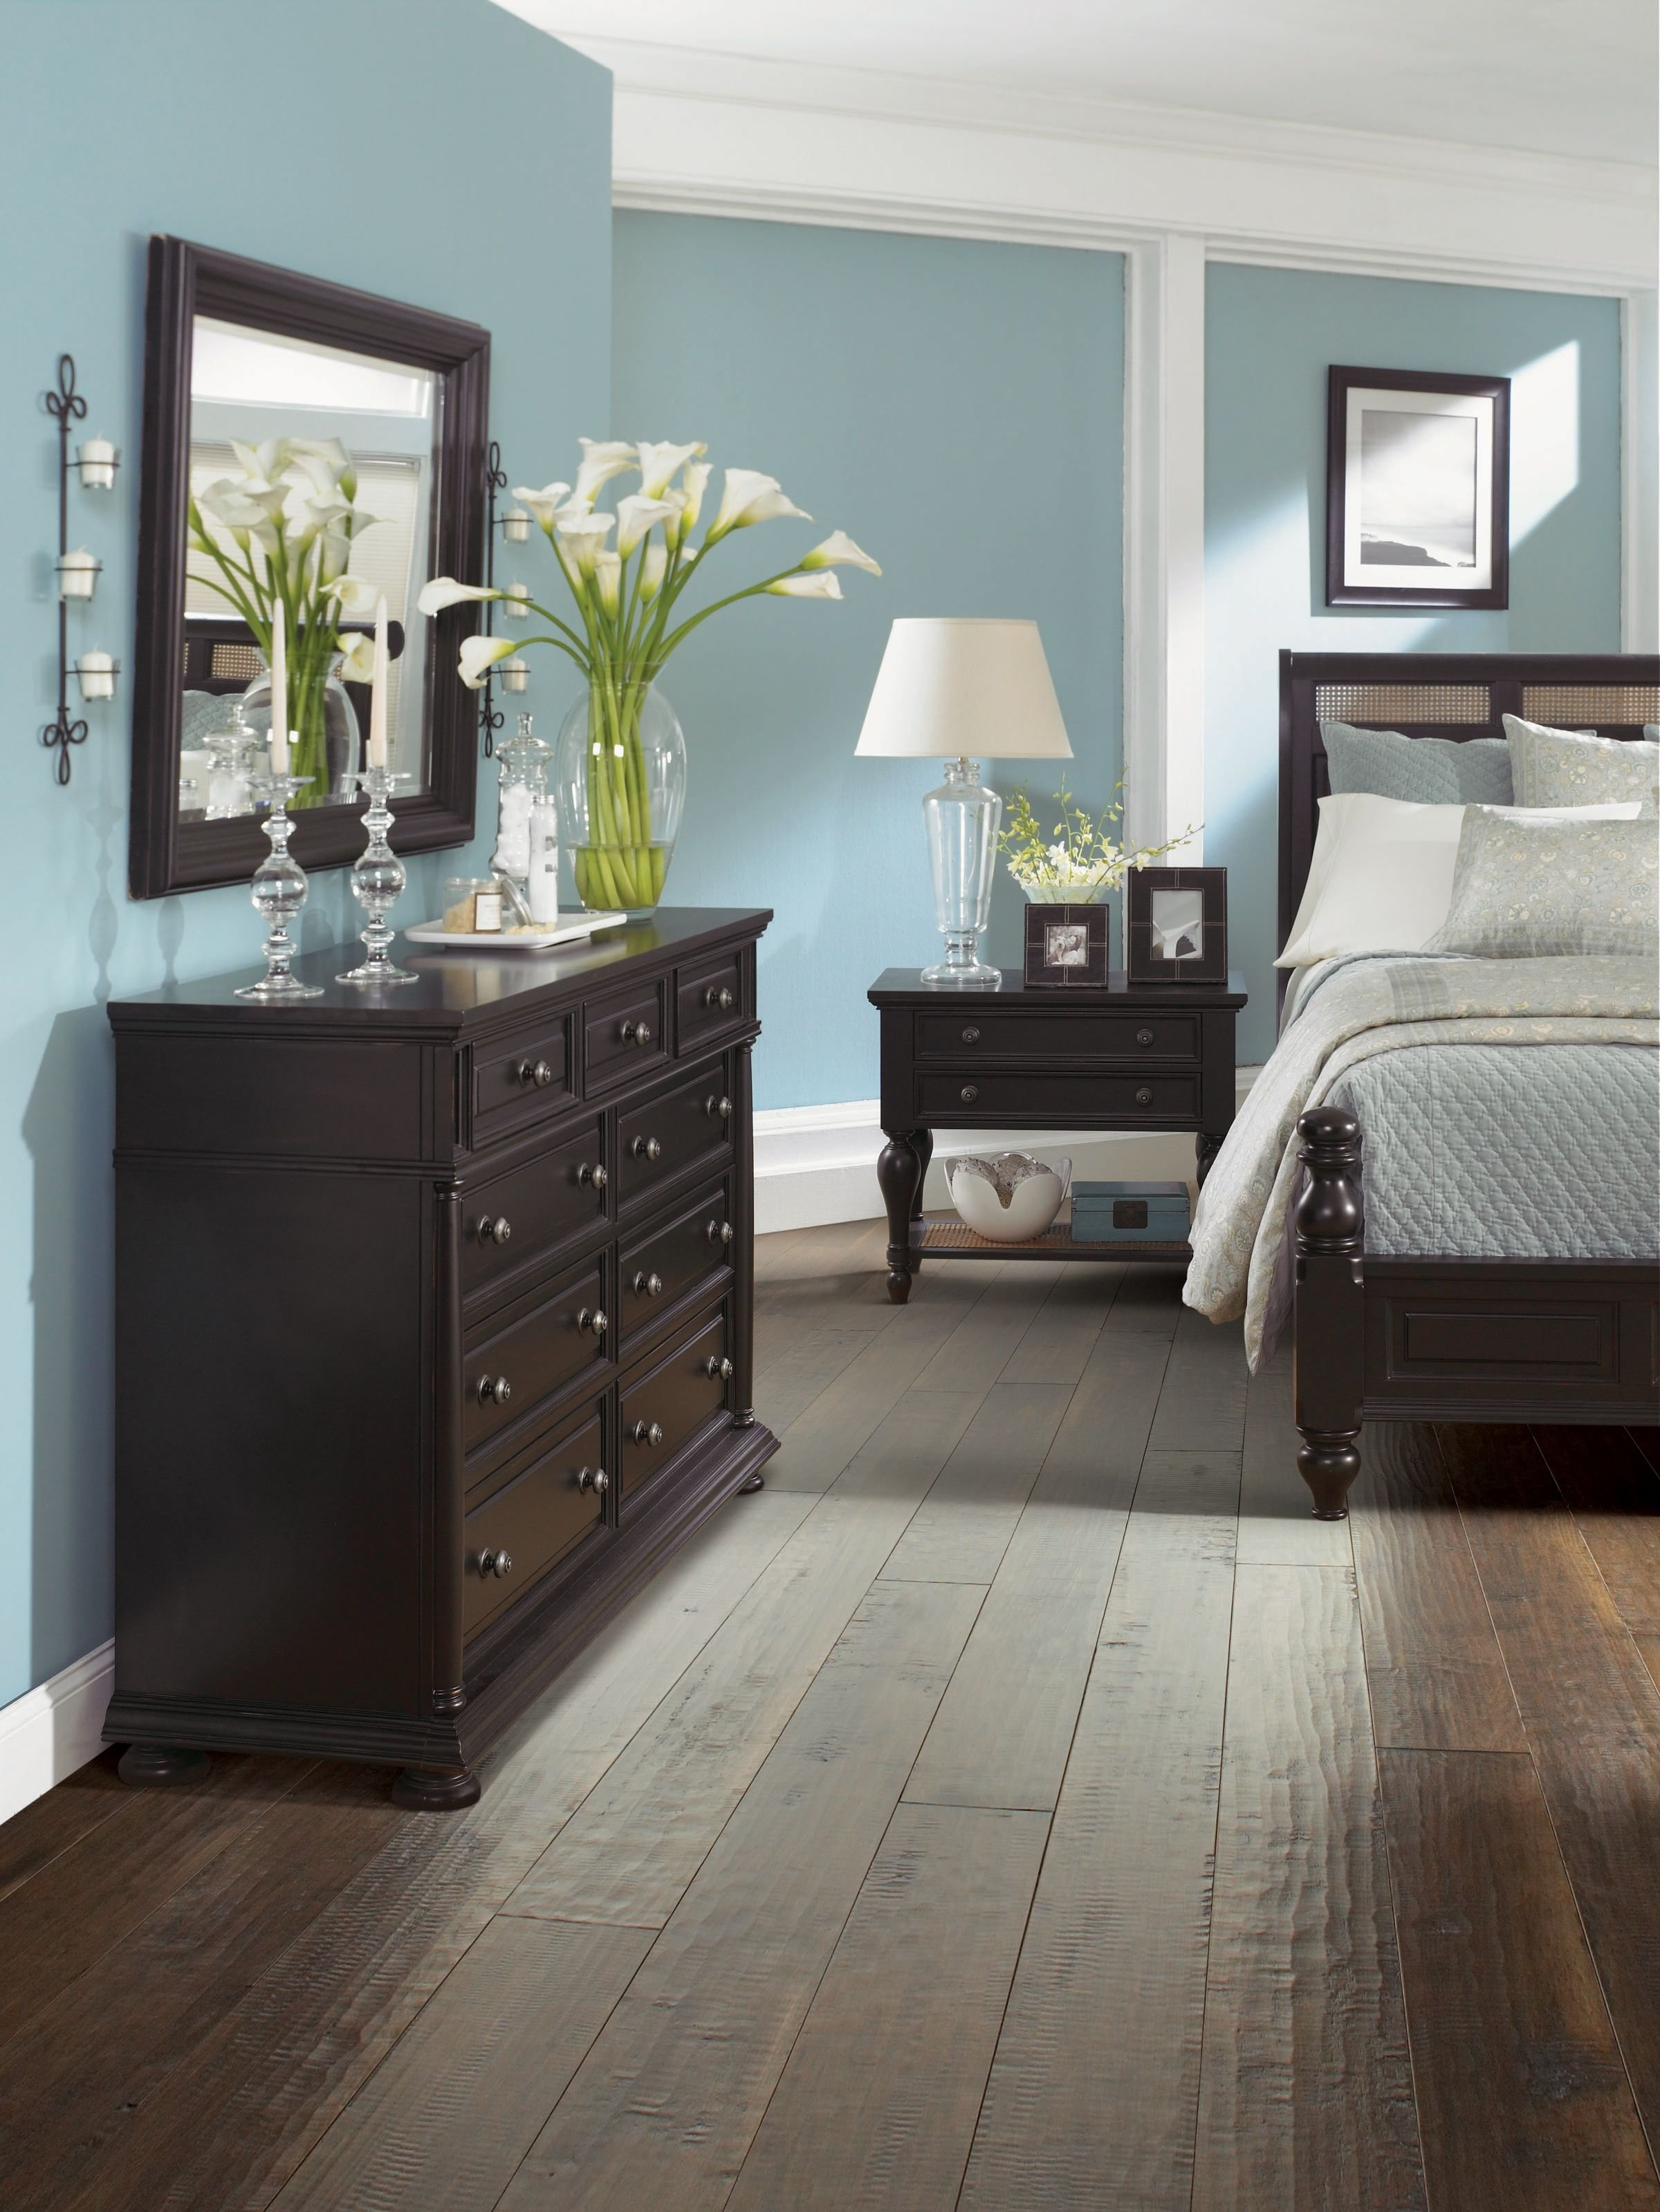 10 Elegant Blue And Brown Bedroom Ideas 30 wood flooring ideas and trends for your stunning bedroom black 2020